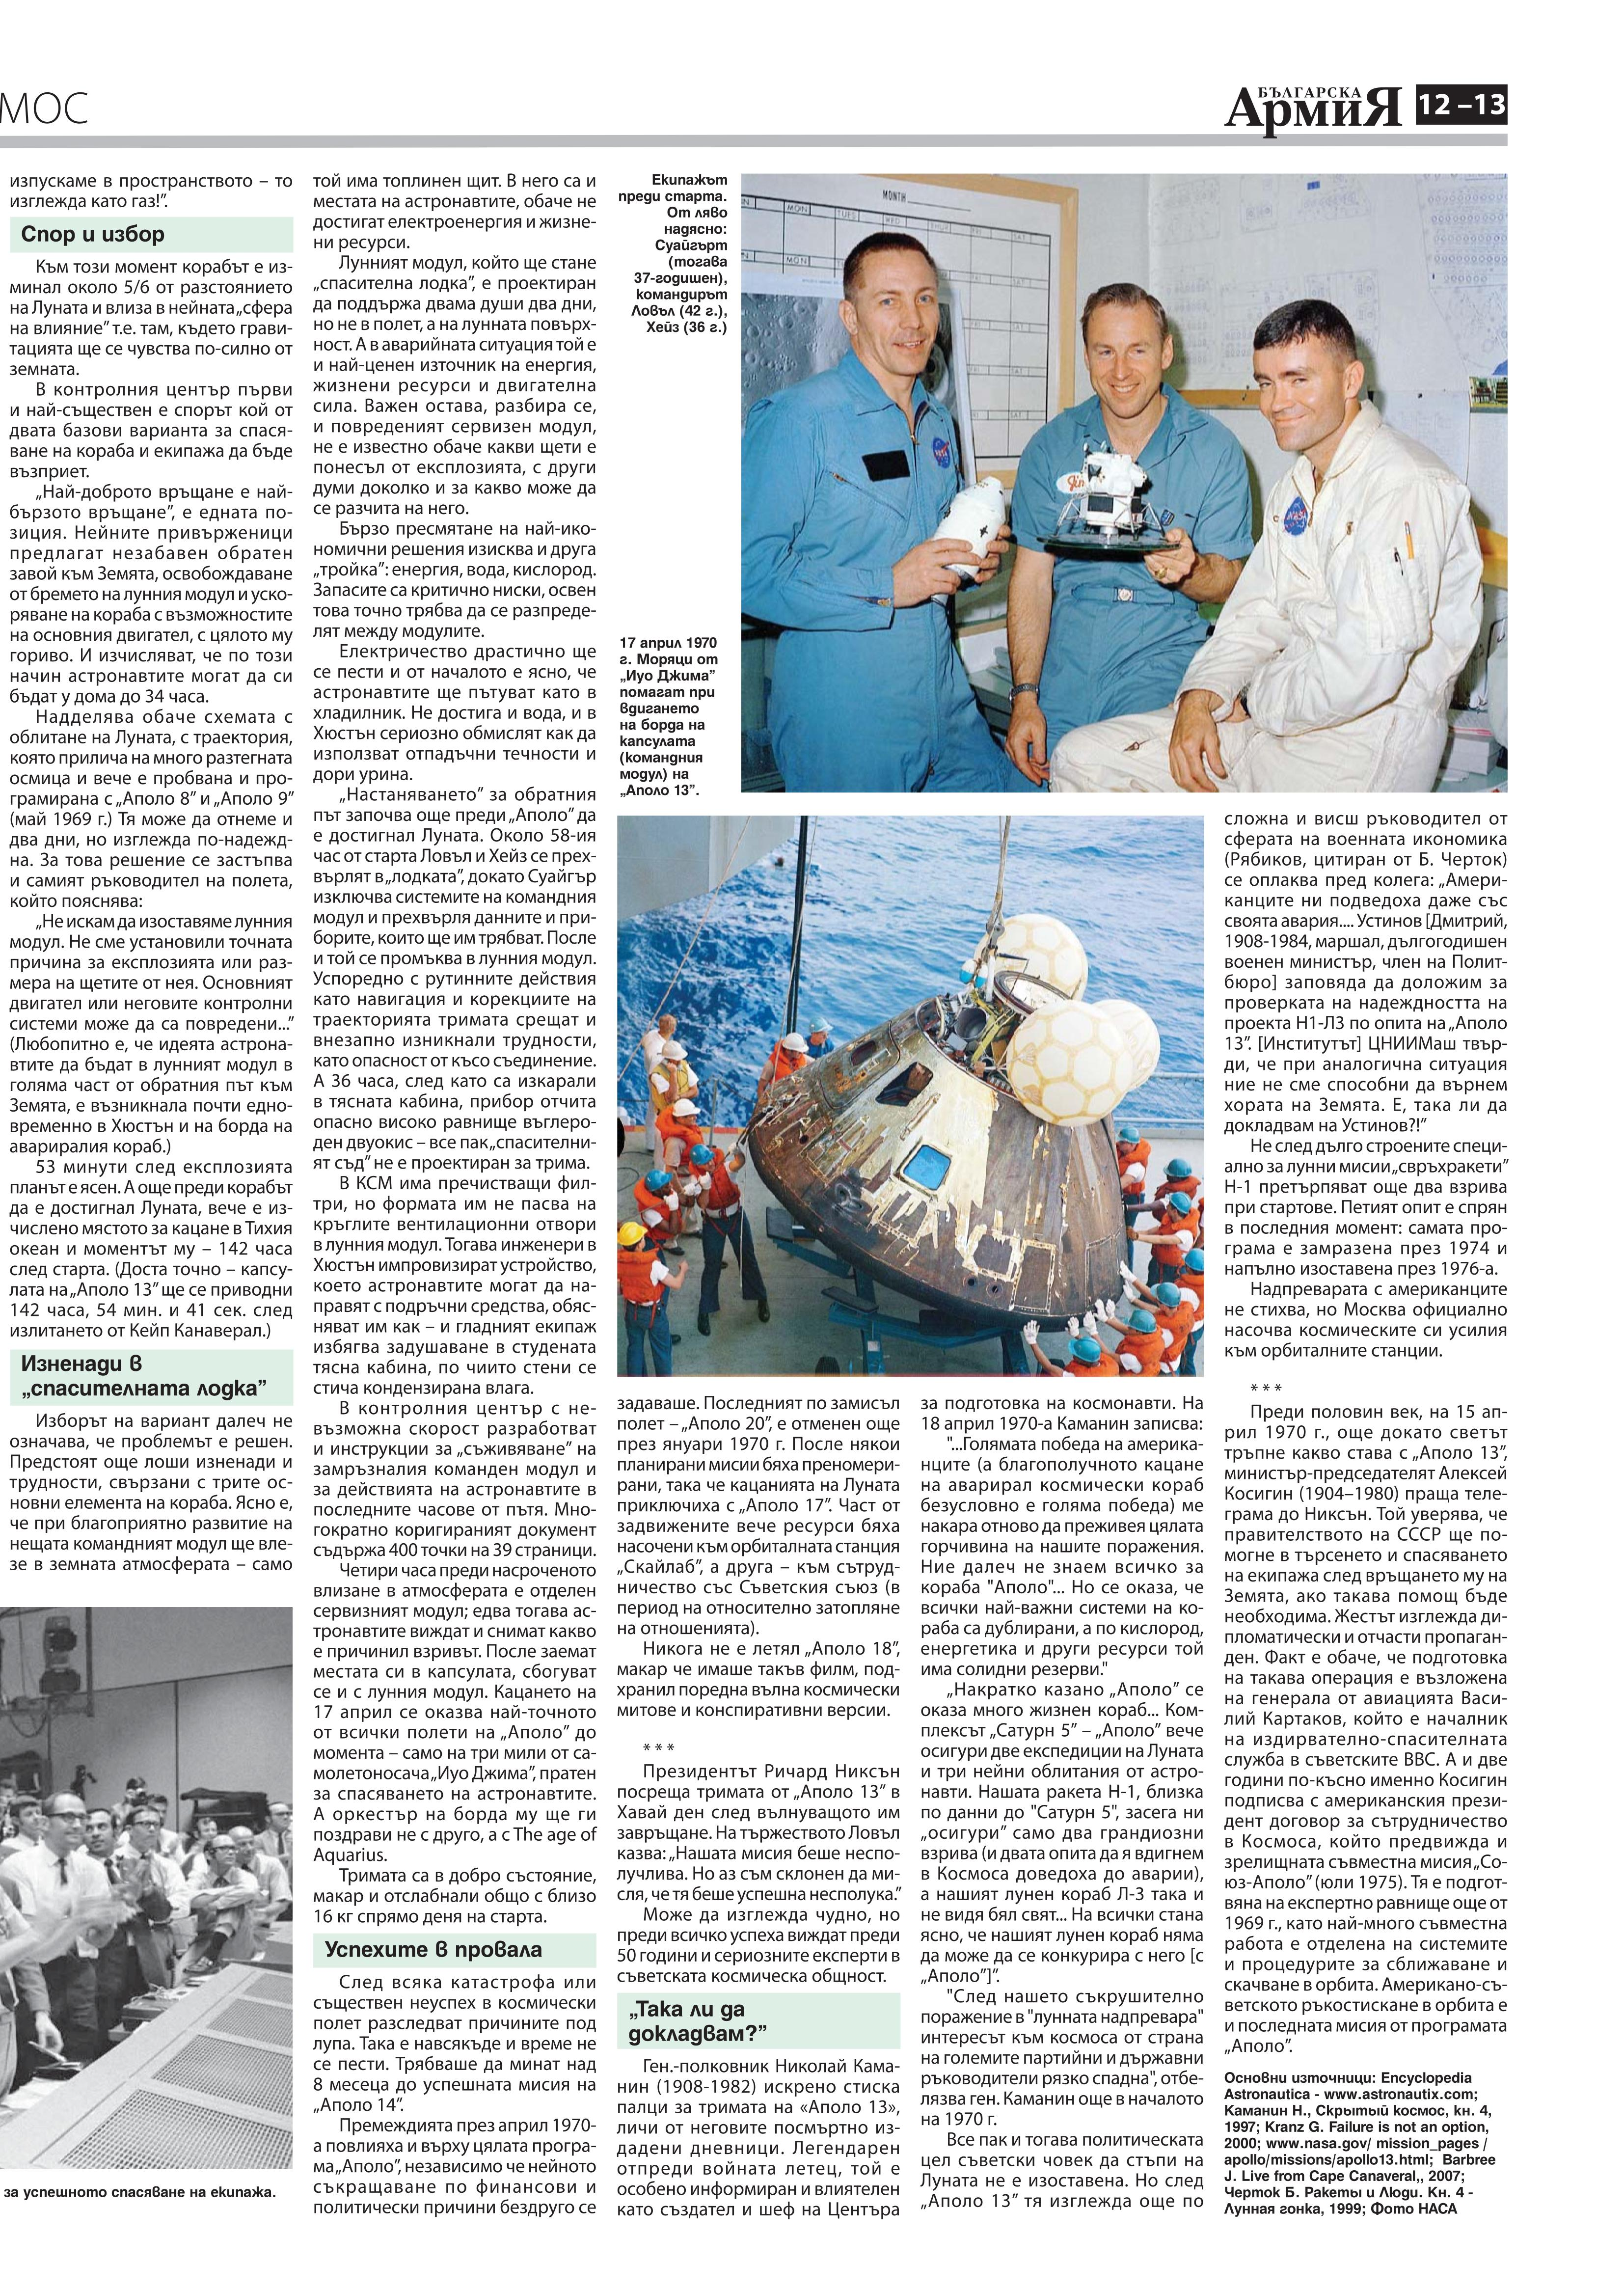 https://armymedia.bg/wp-content/uploads/2015/06/13.page1_-134.jpg